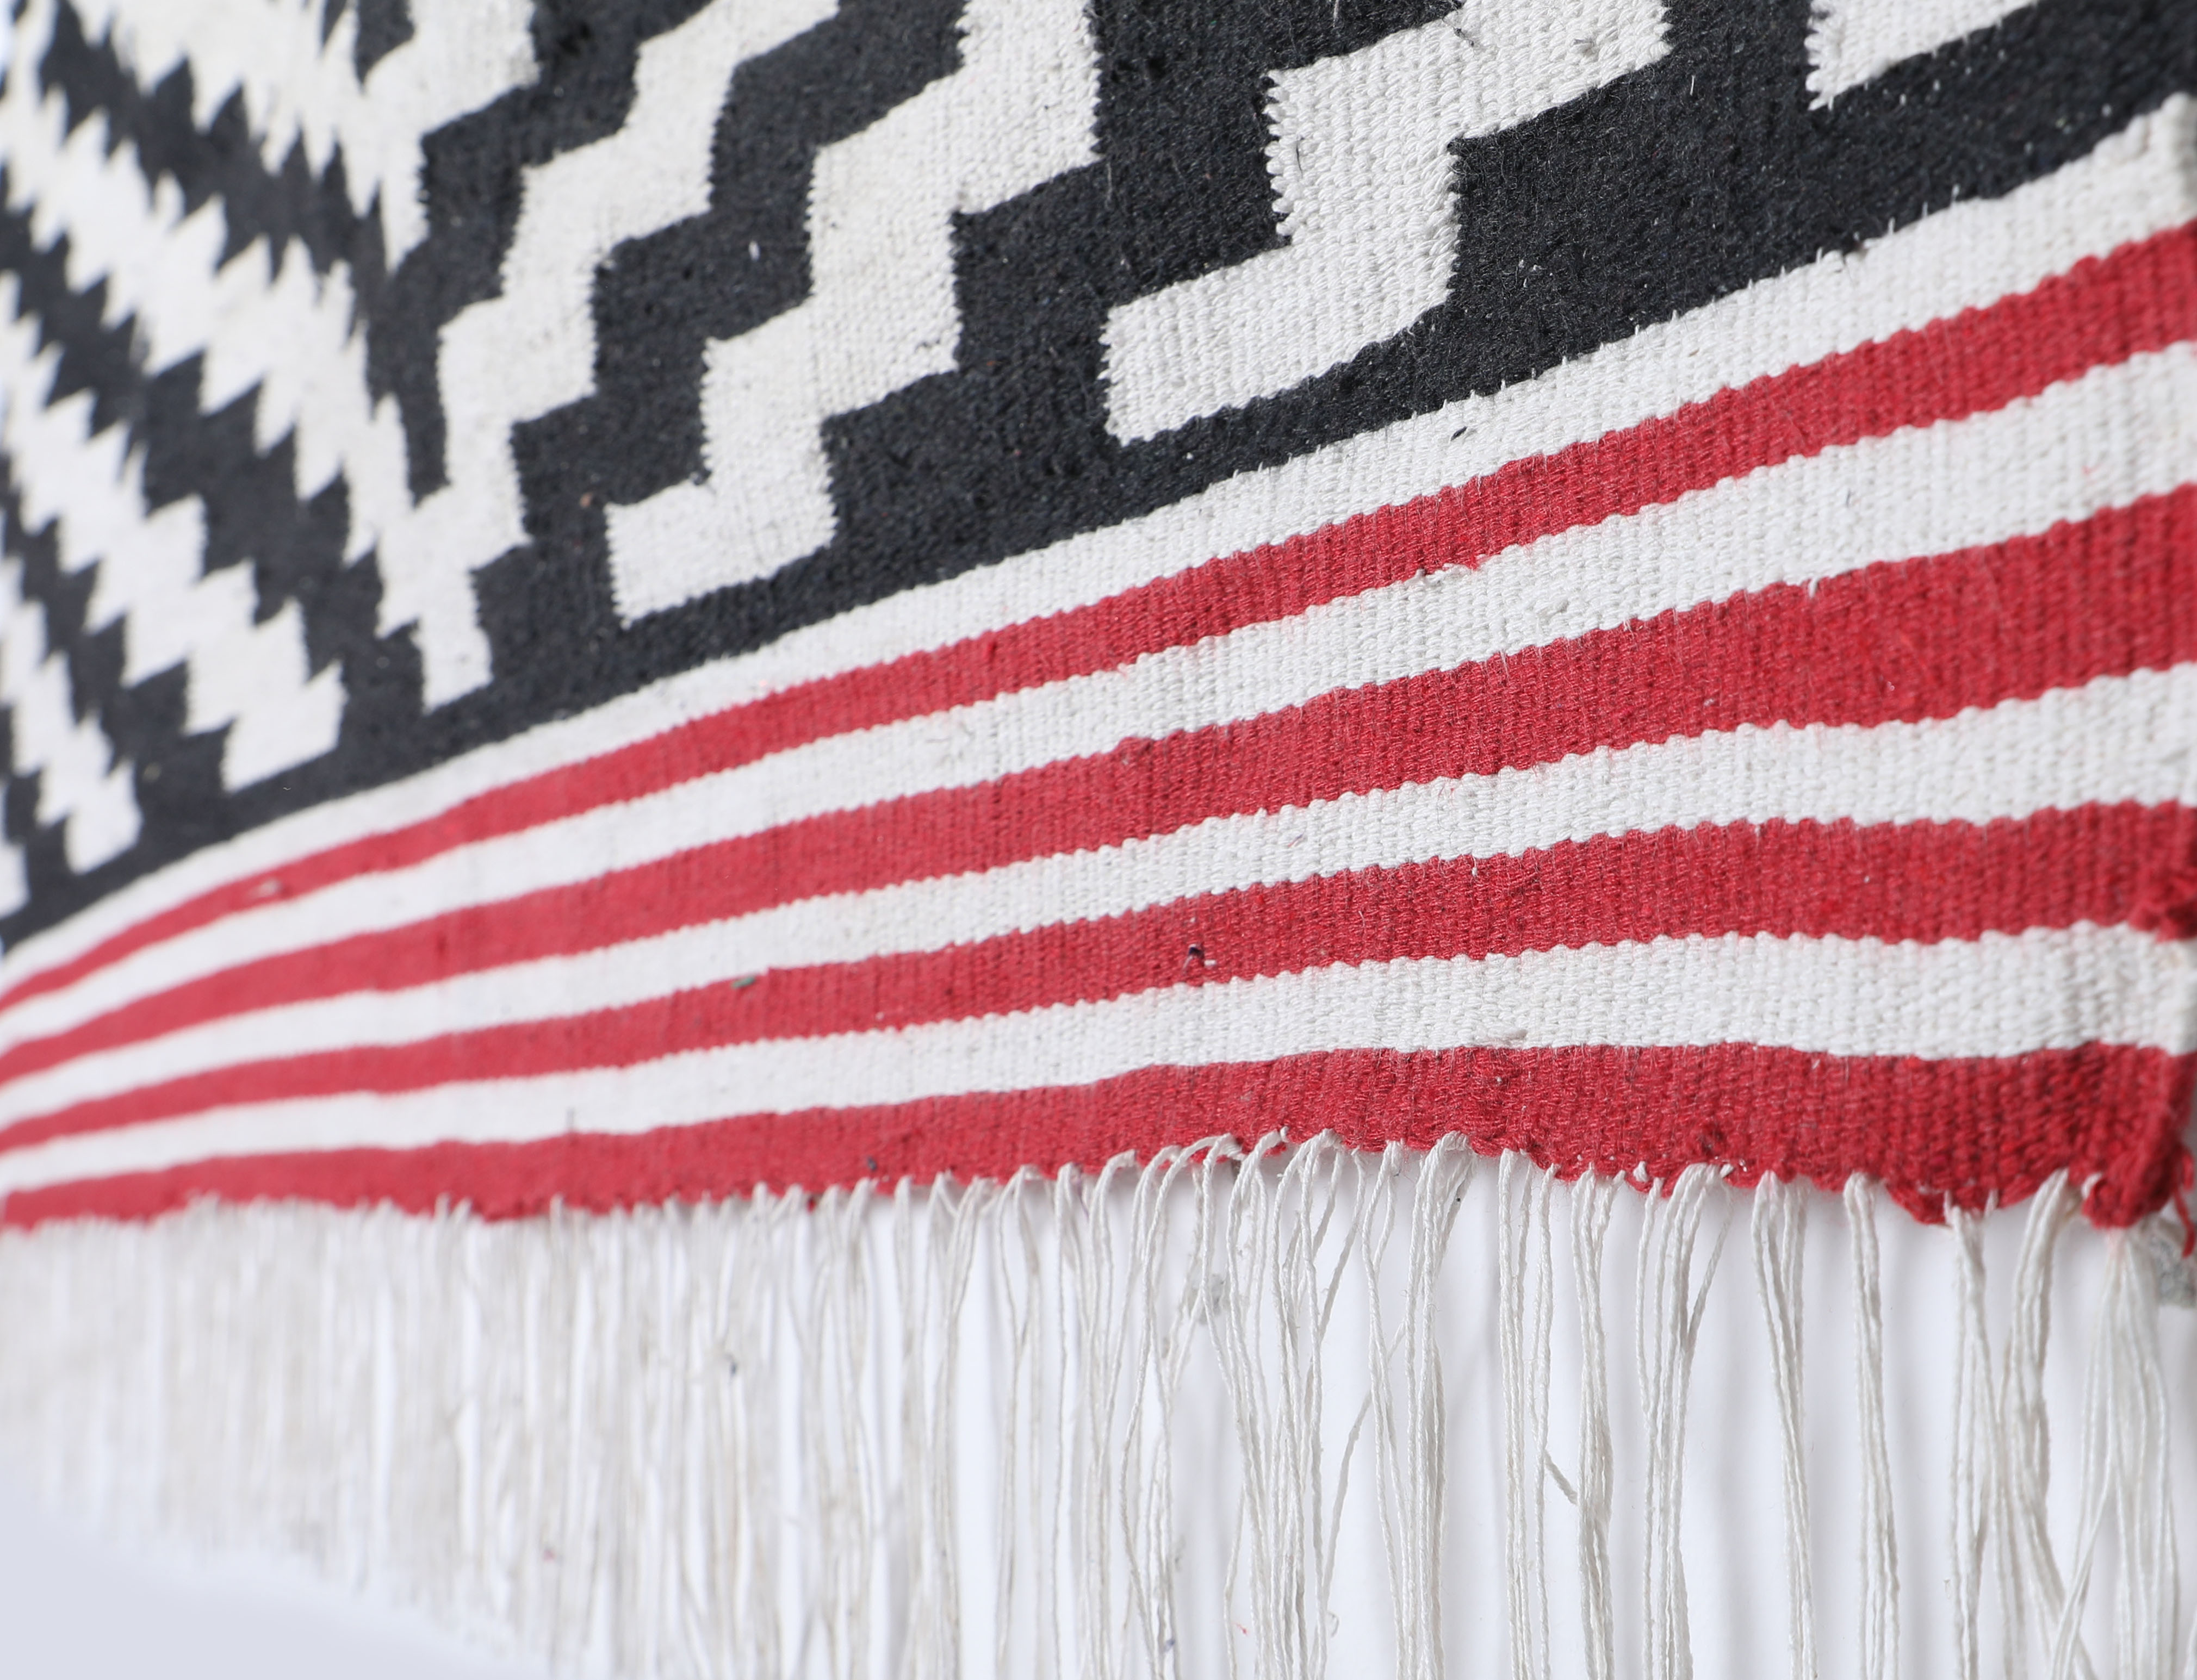 Hand Woven Cotton Dhurrie Rug